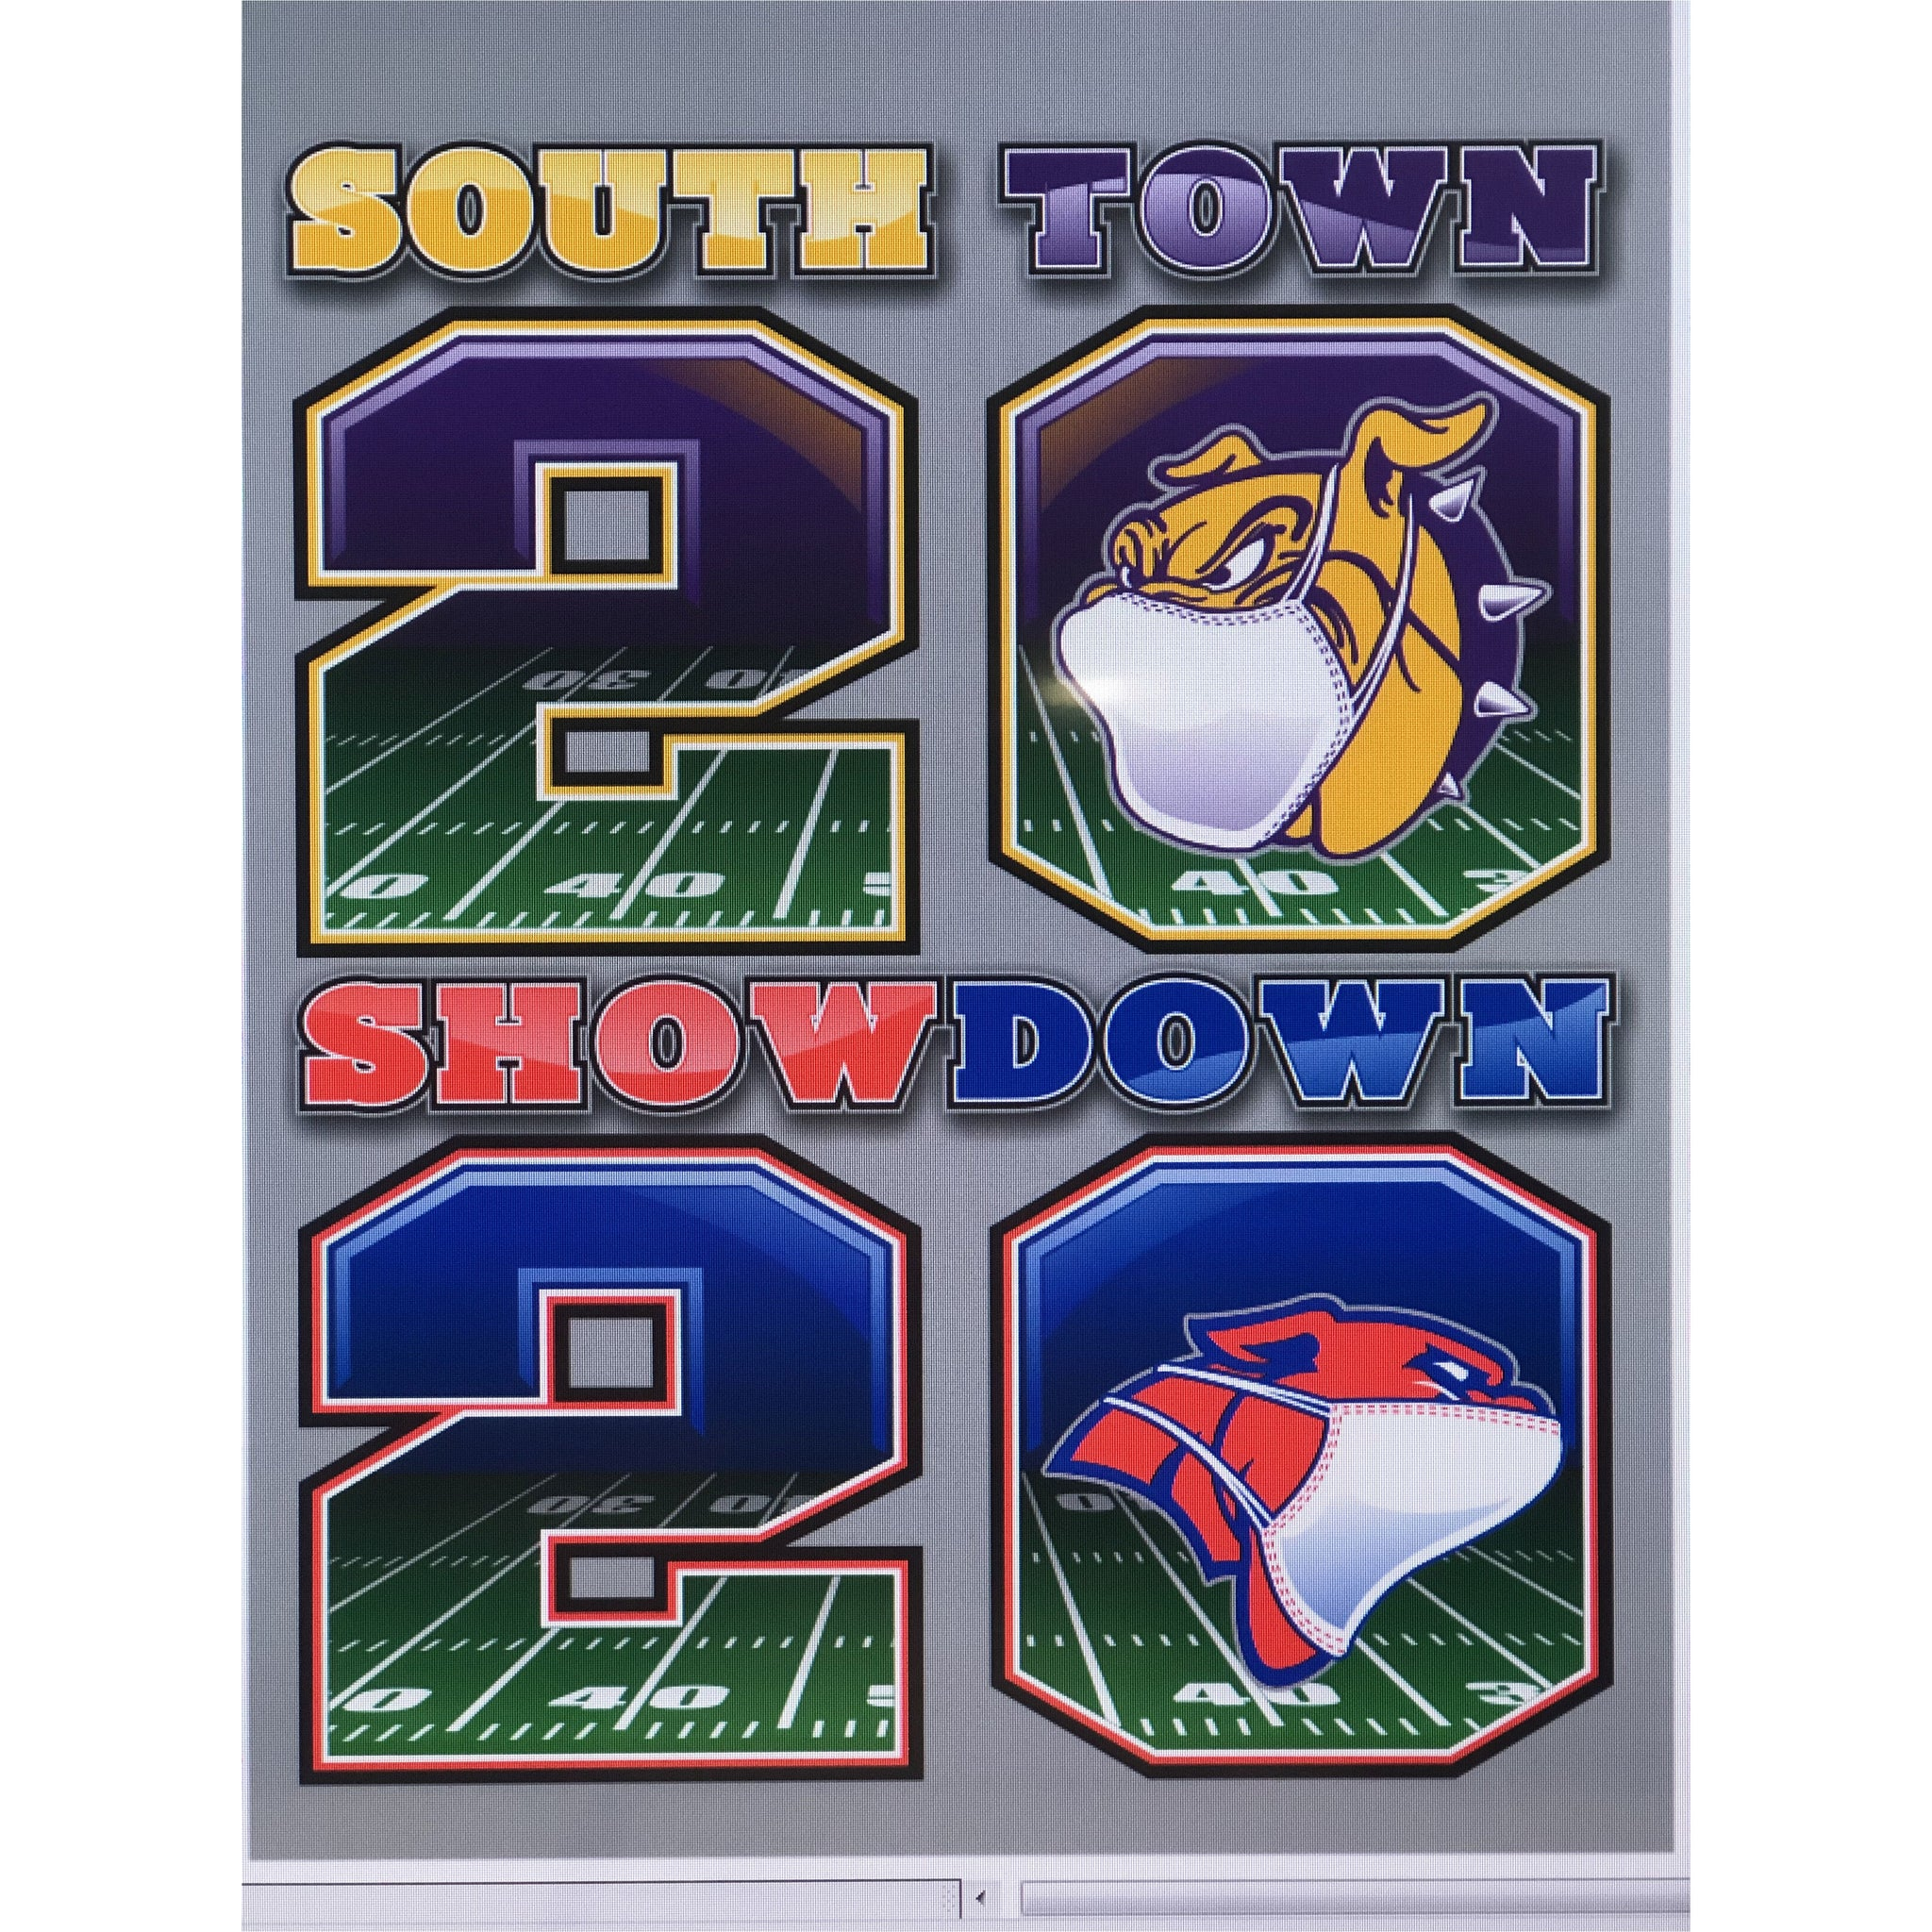 South Town Showdown 2020 Tees